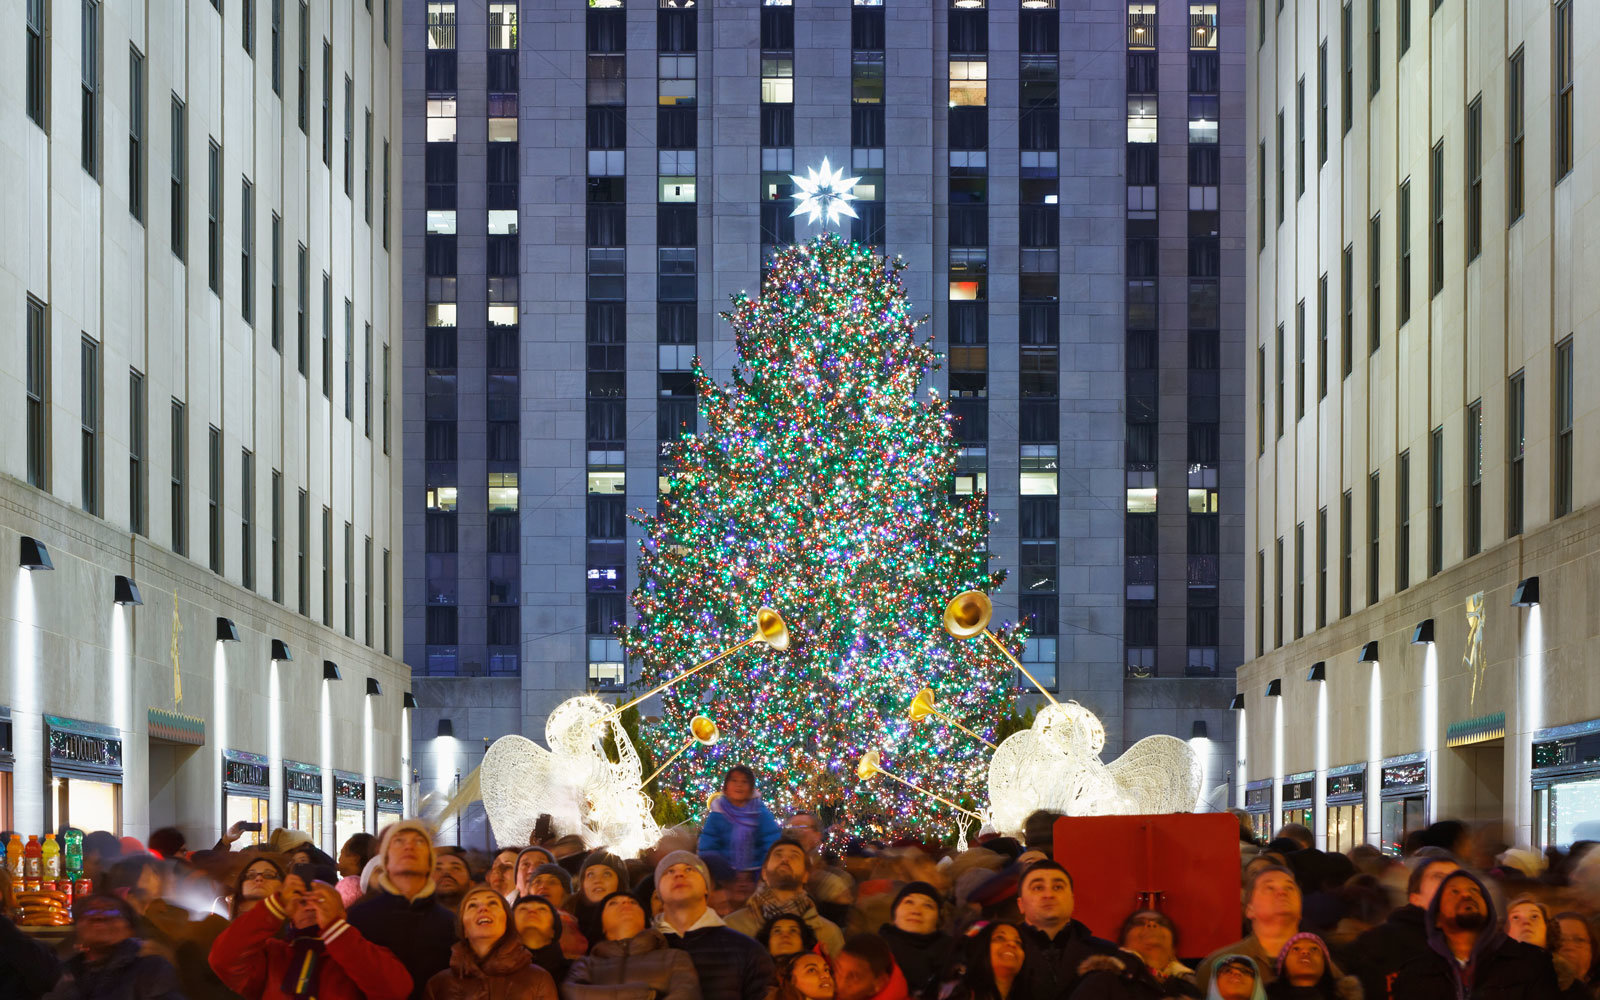 How to Watch the Rockefeller Tree Lighting 2017 Live